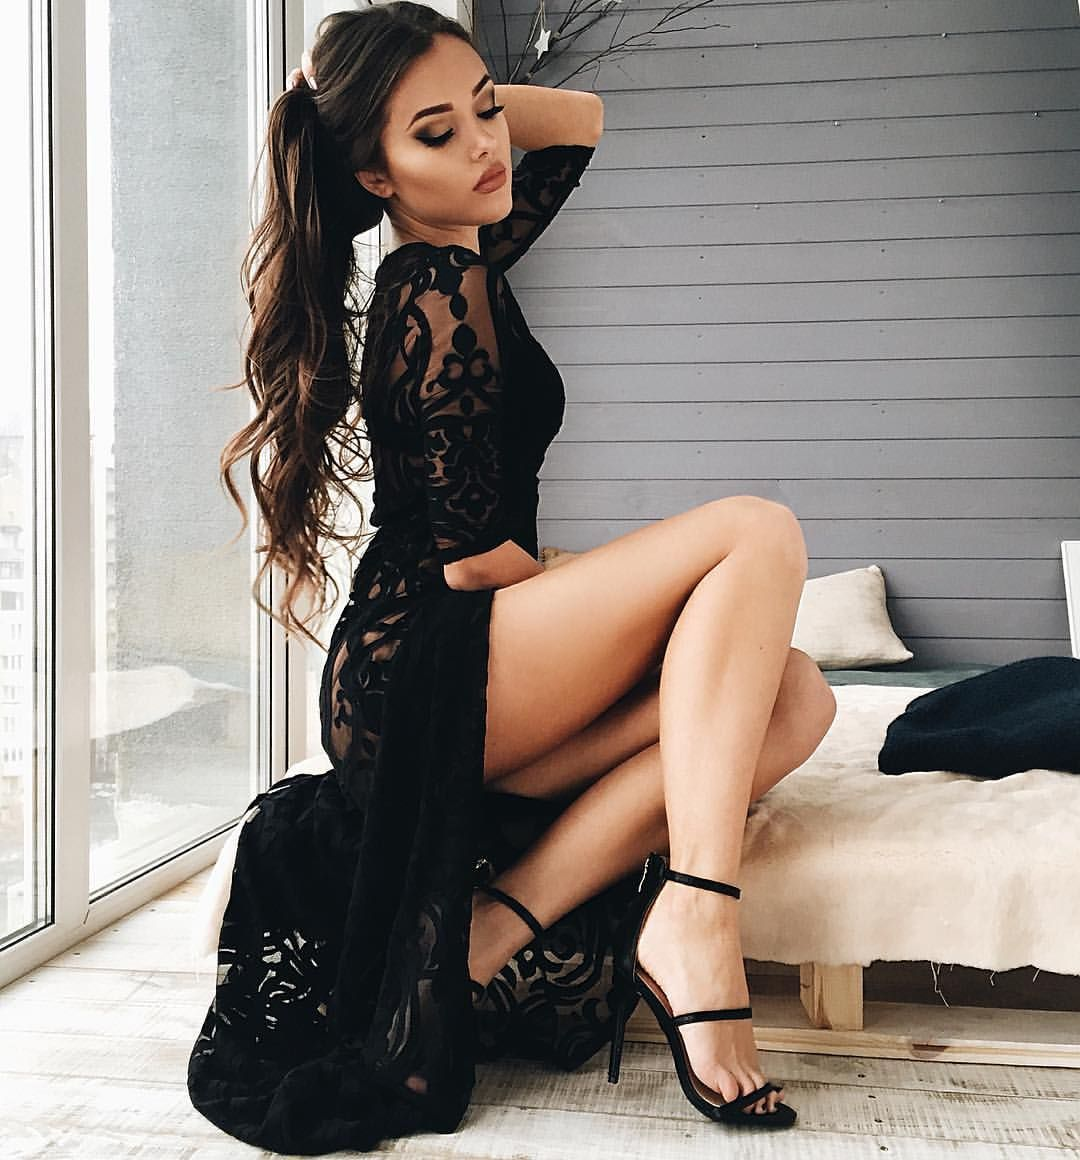 Natalie danish on instagram wearing fashionnova dress and shoes use 15 off discount code - Haut sexy femme ...